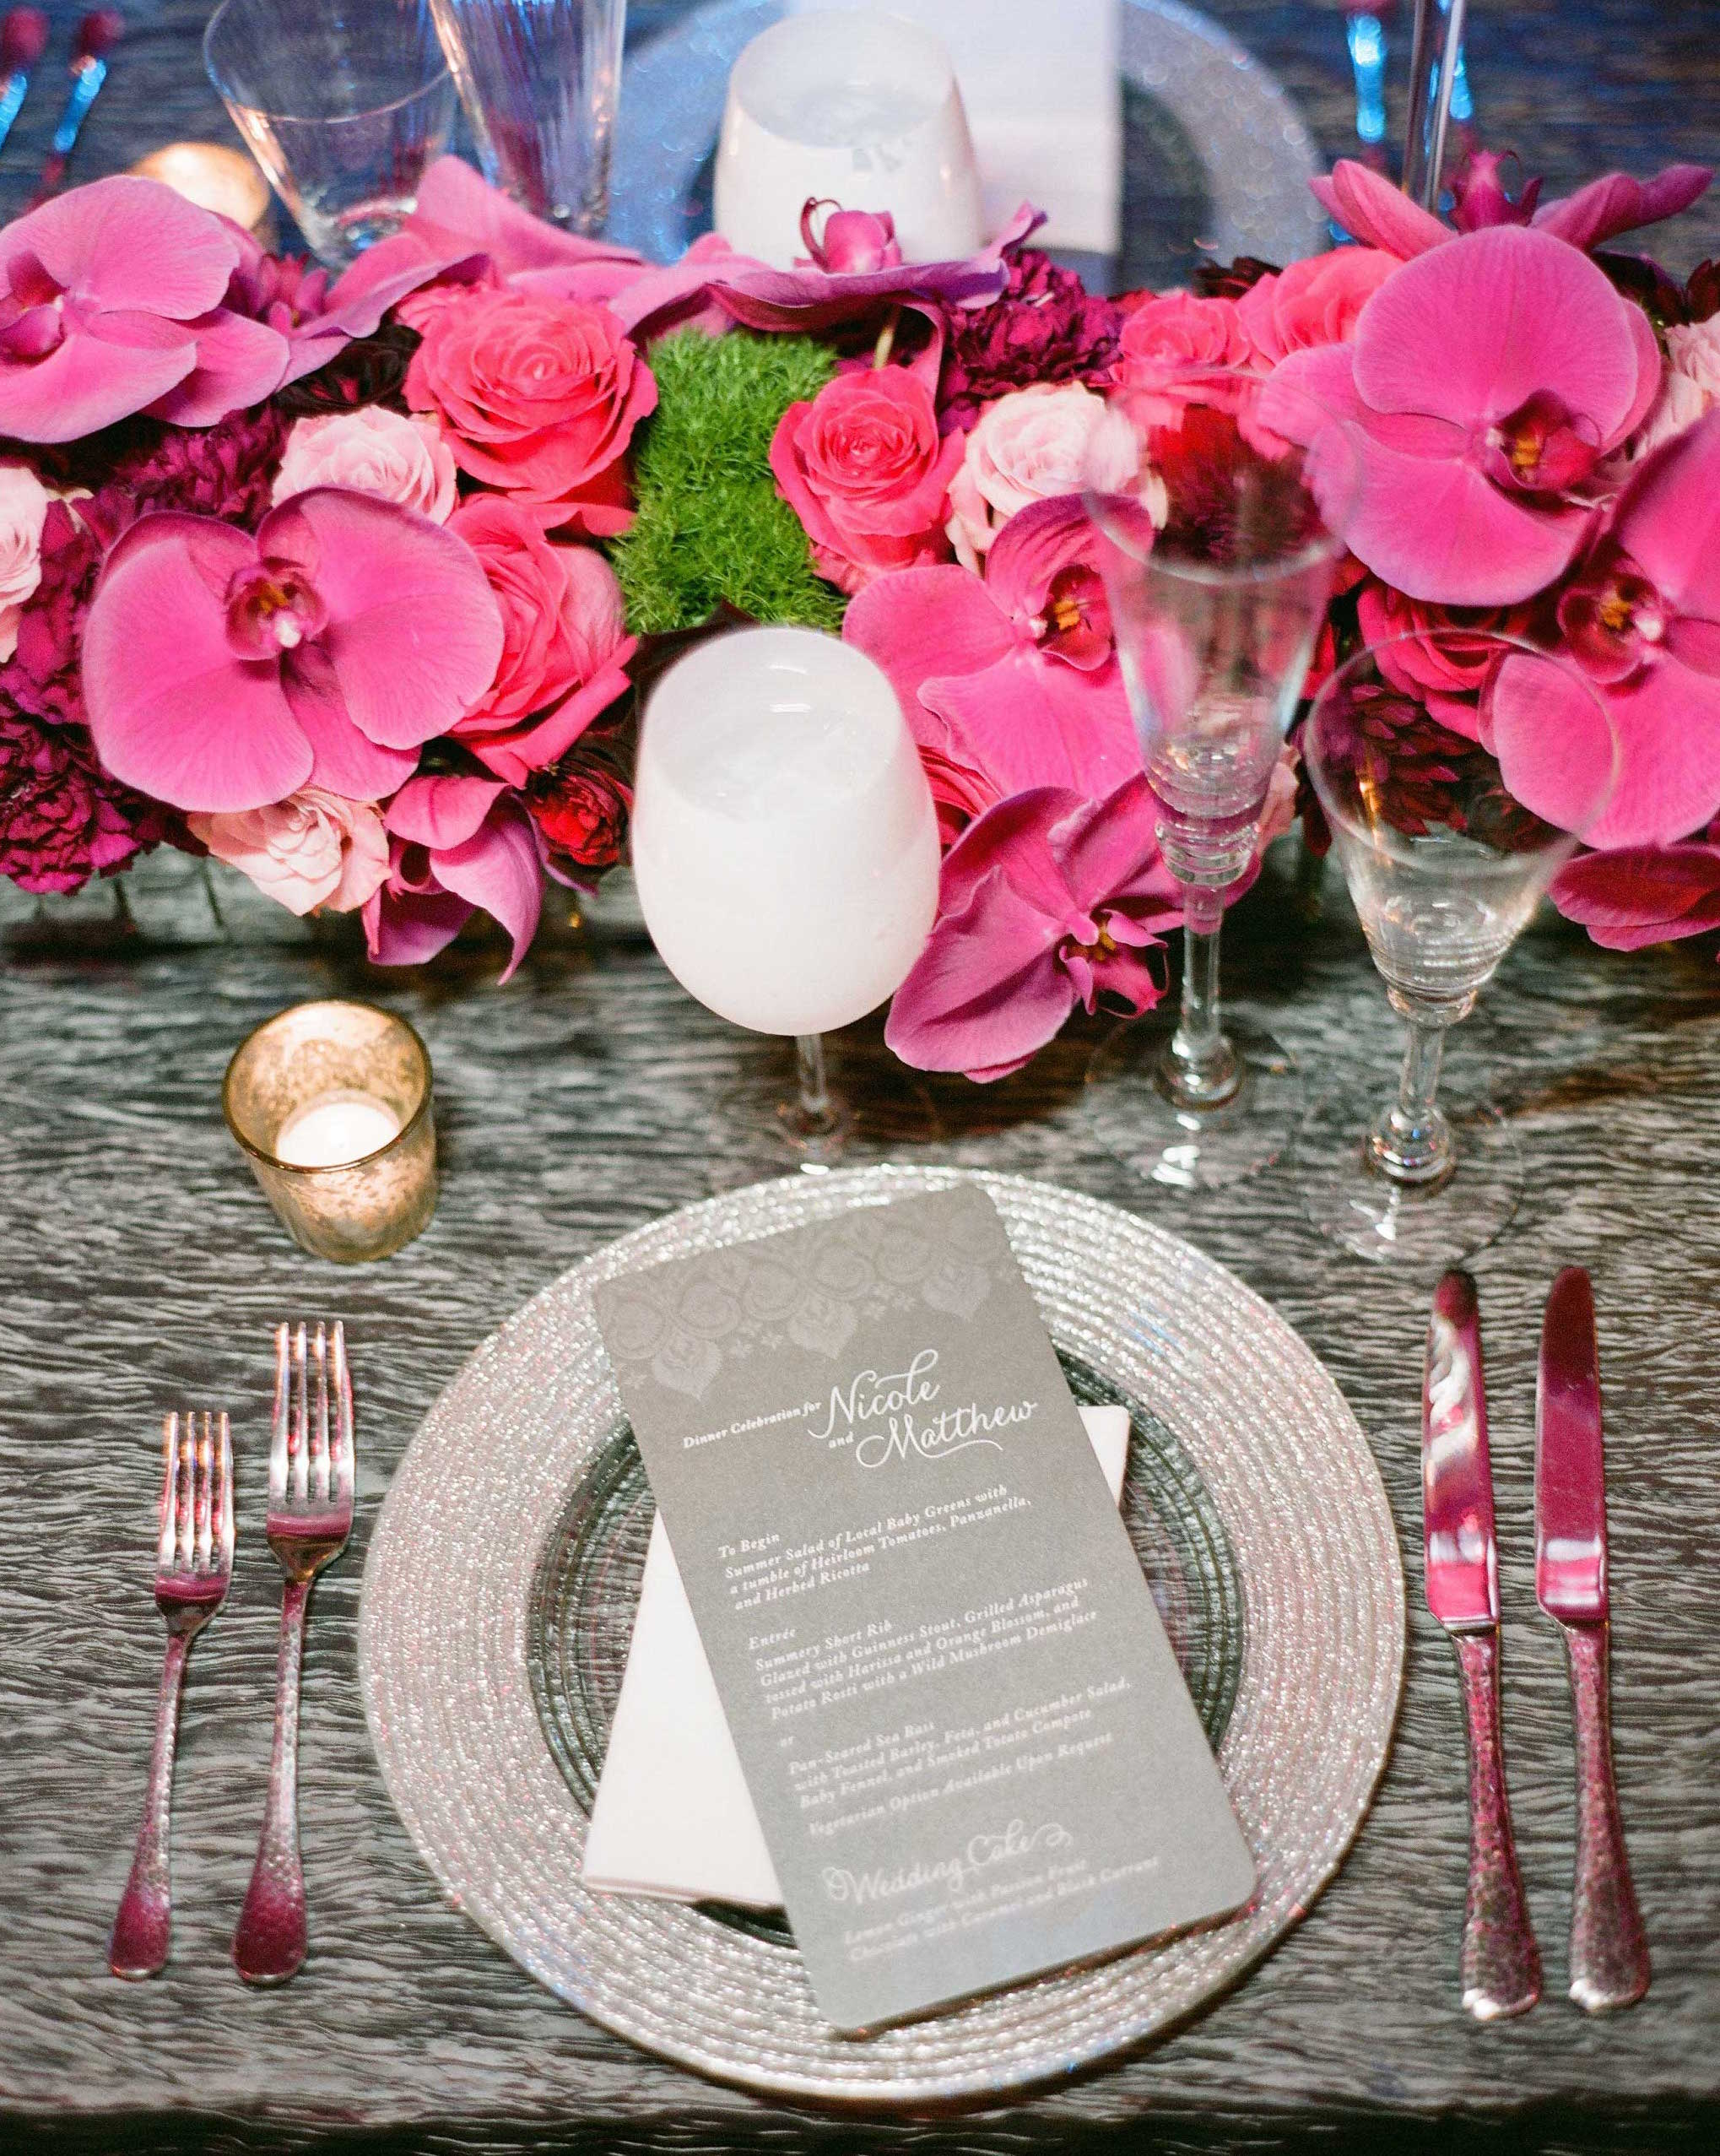 Grey textured wedding linen with silver charger